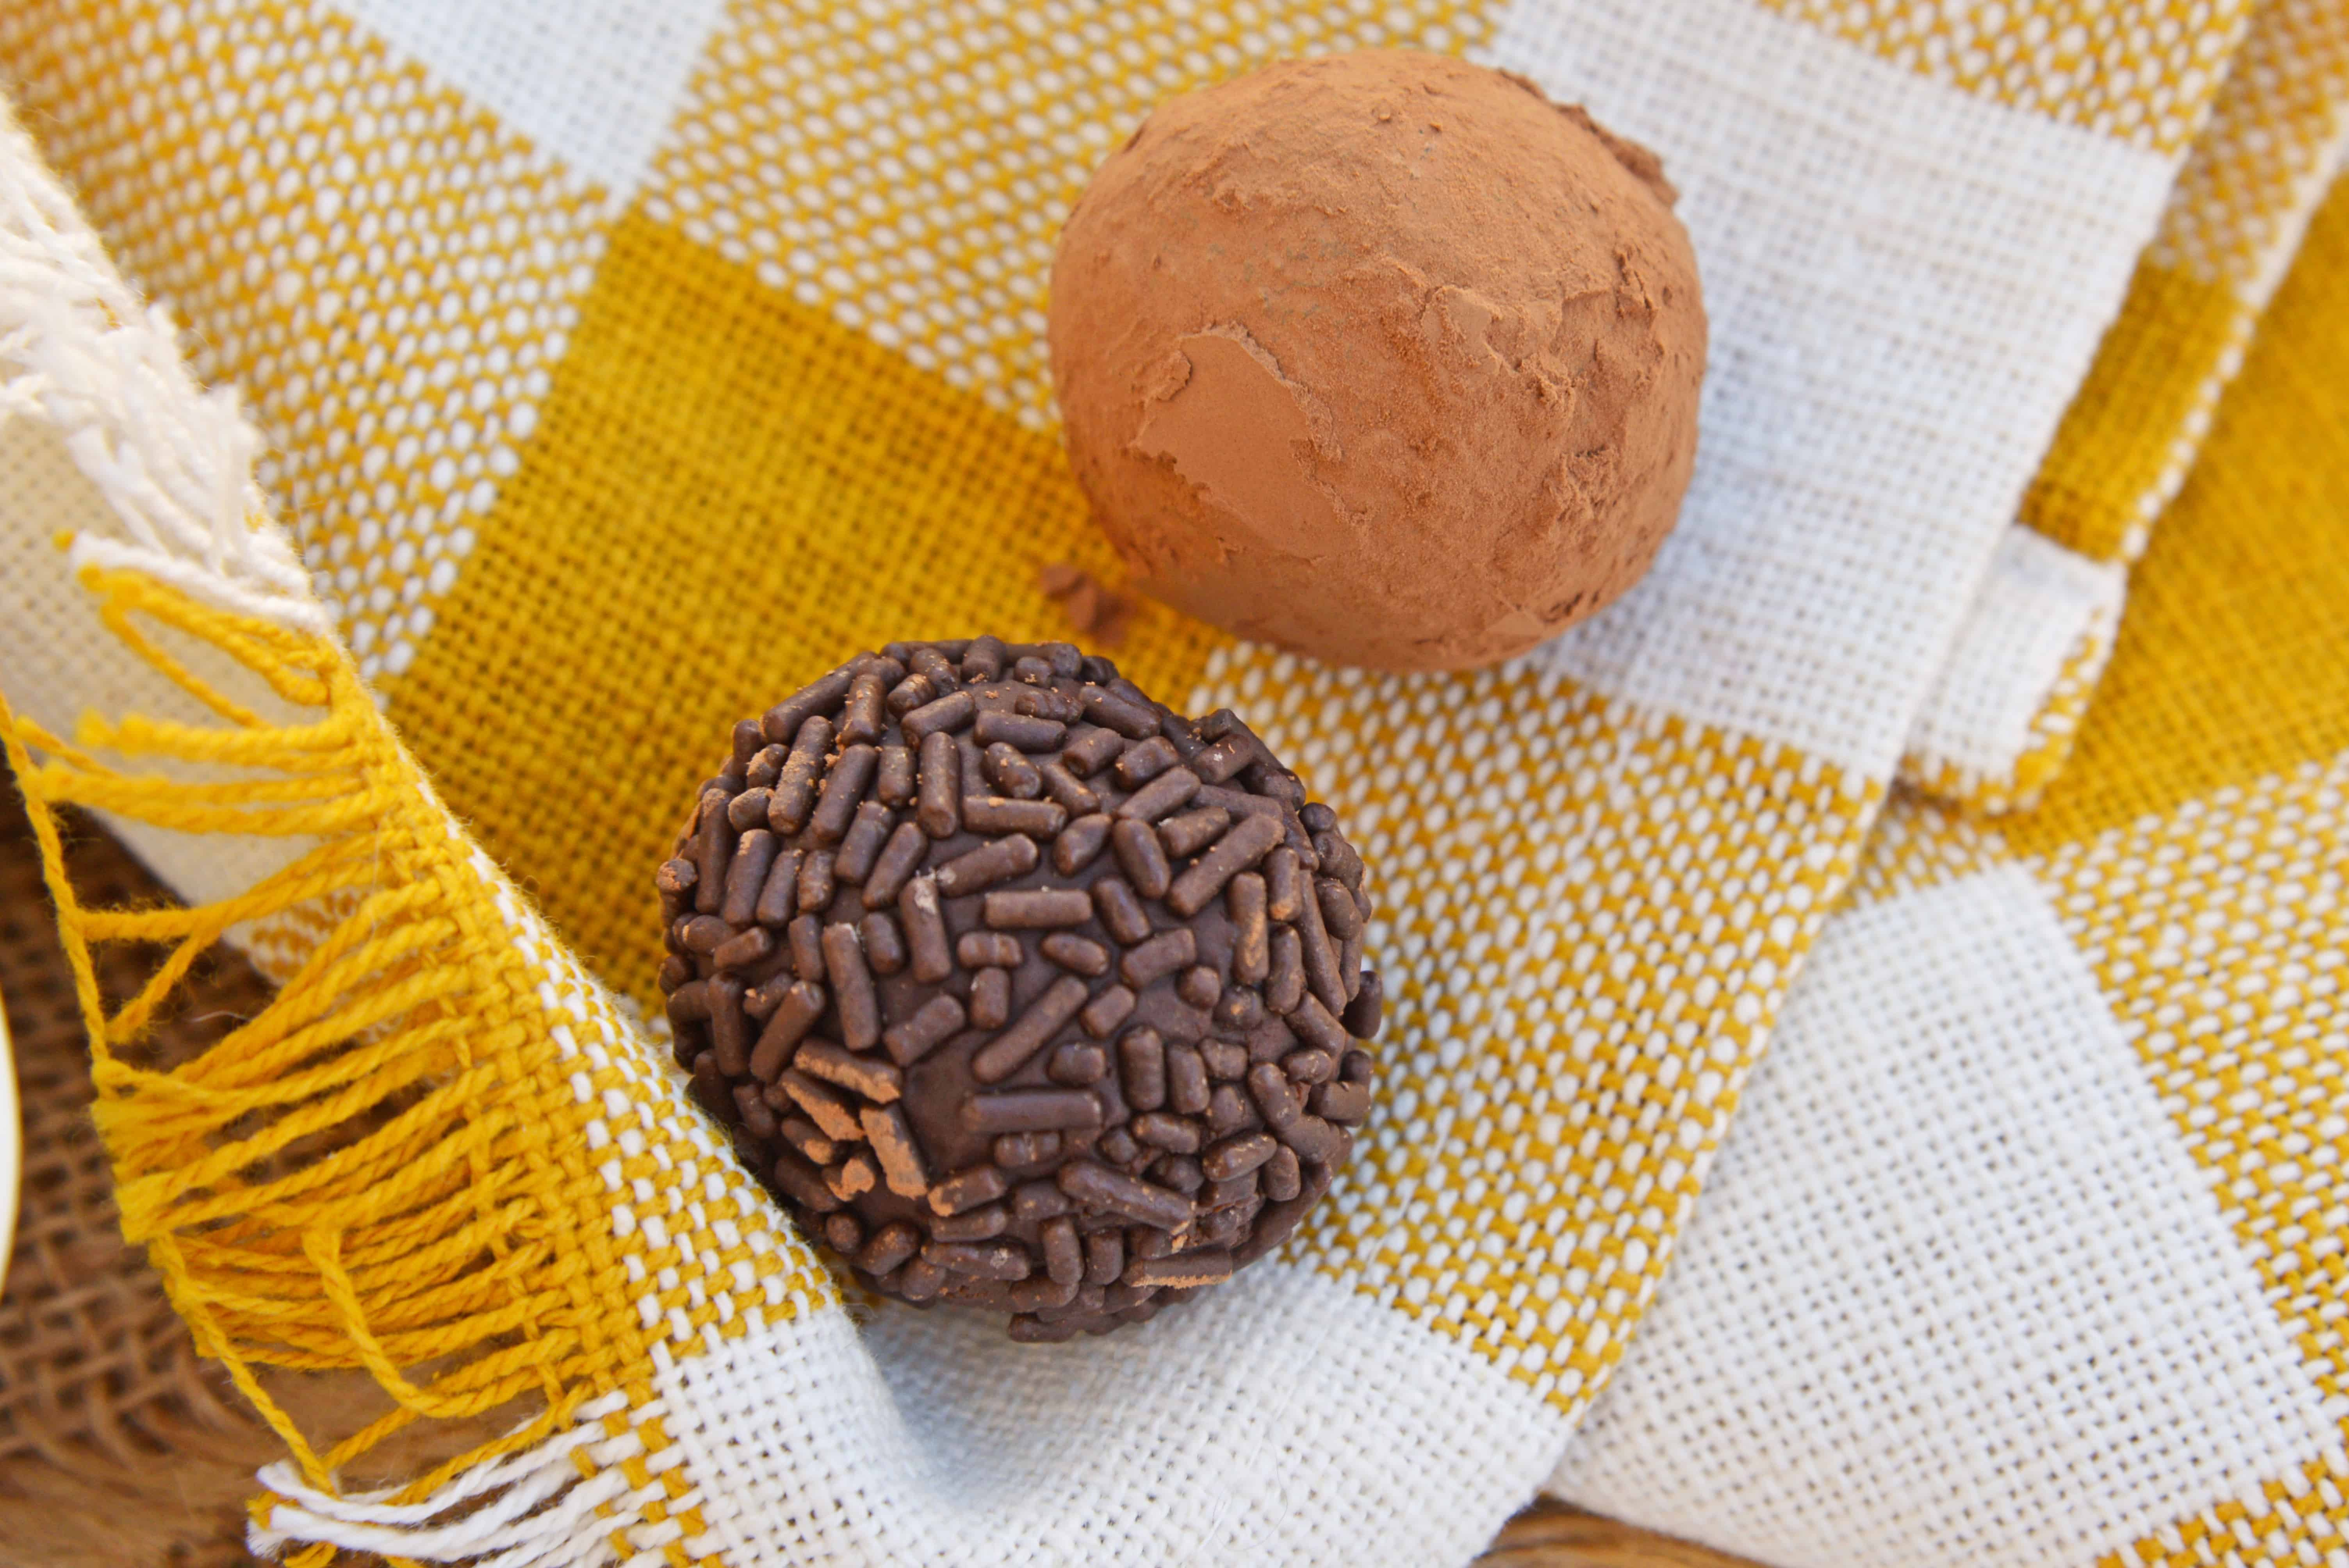 Easy Chocolate Truffles only use 4 ingredients, including sweetened condensed milk, to make a rich, decadent dessert. Roll them in chocolate sprinkles, powdered sugar or cocoa for the the finished touch! #chocolatetruffles #easytruffles www.savoryexperiments.com